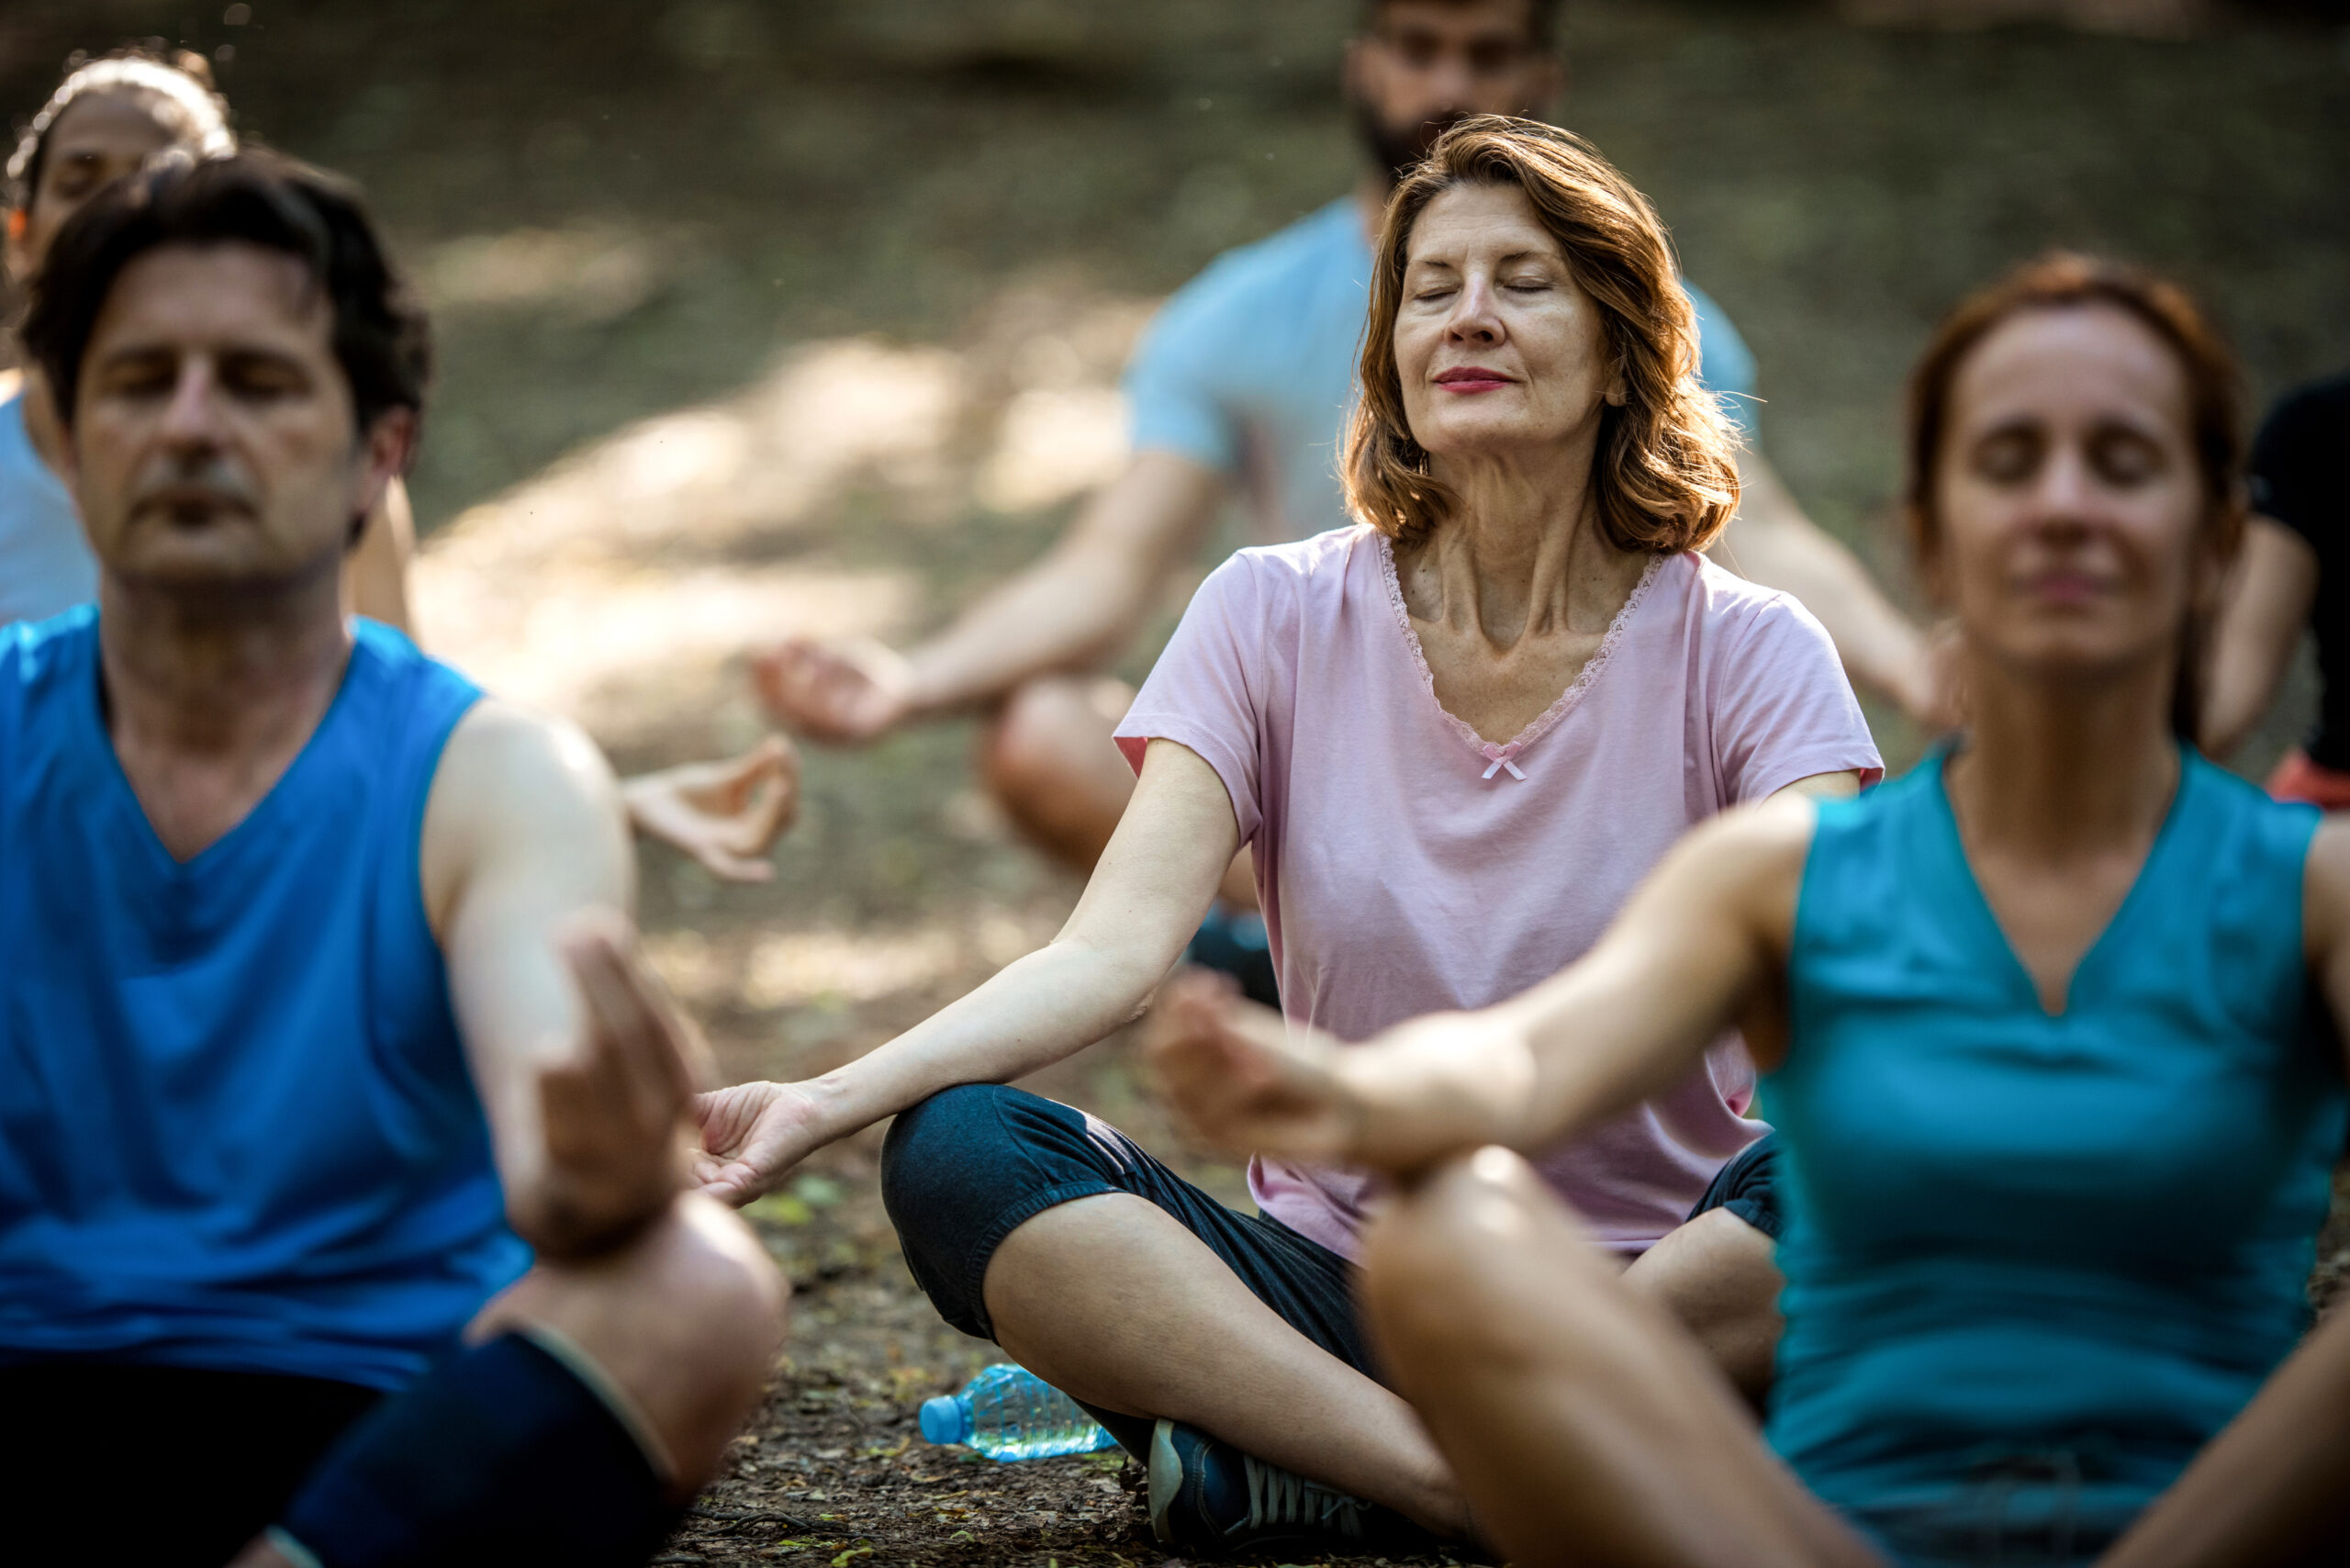 Group of athletic people in Lotus position meditating on exercise class in nature.